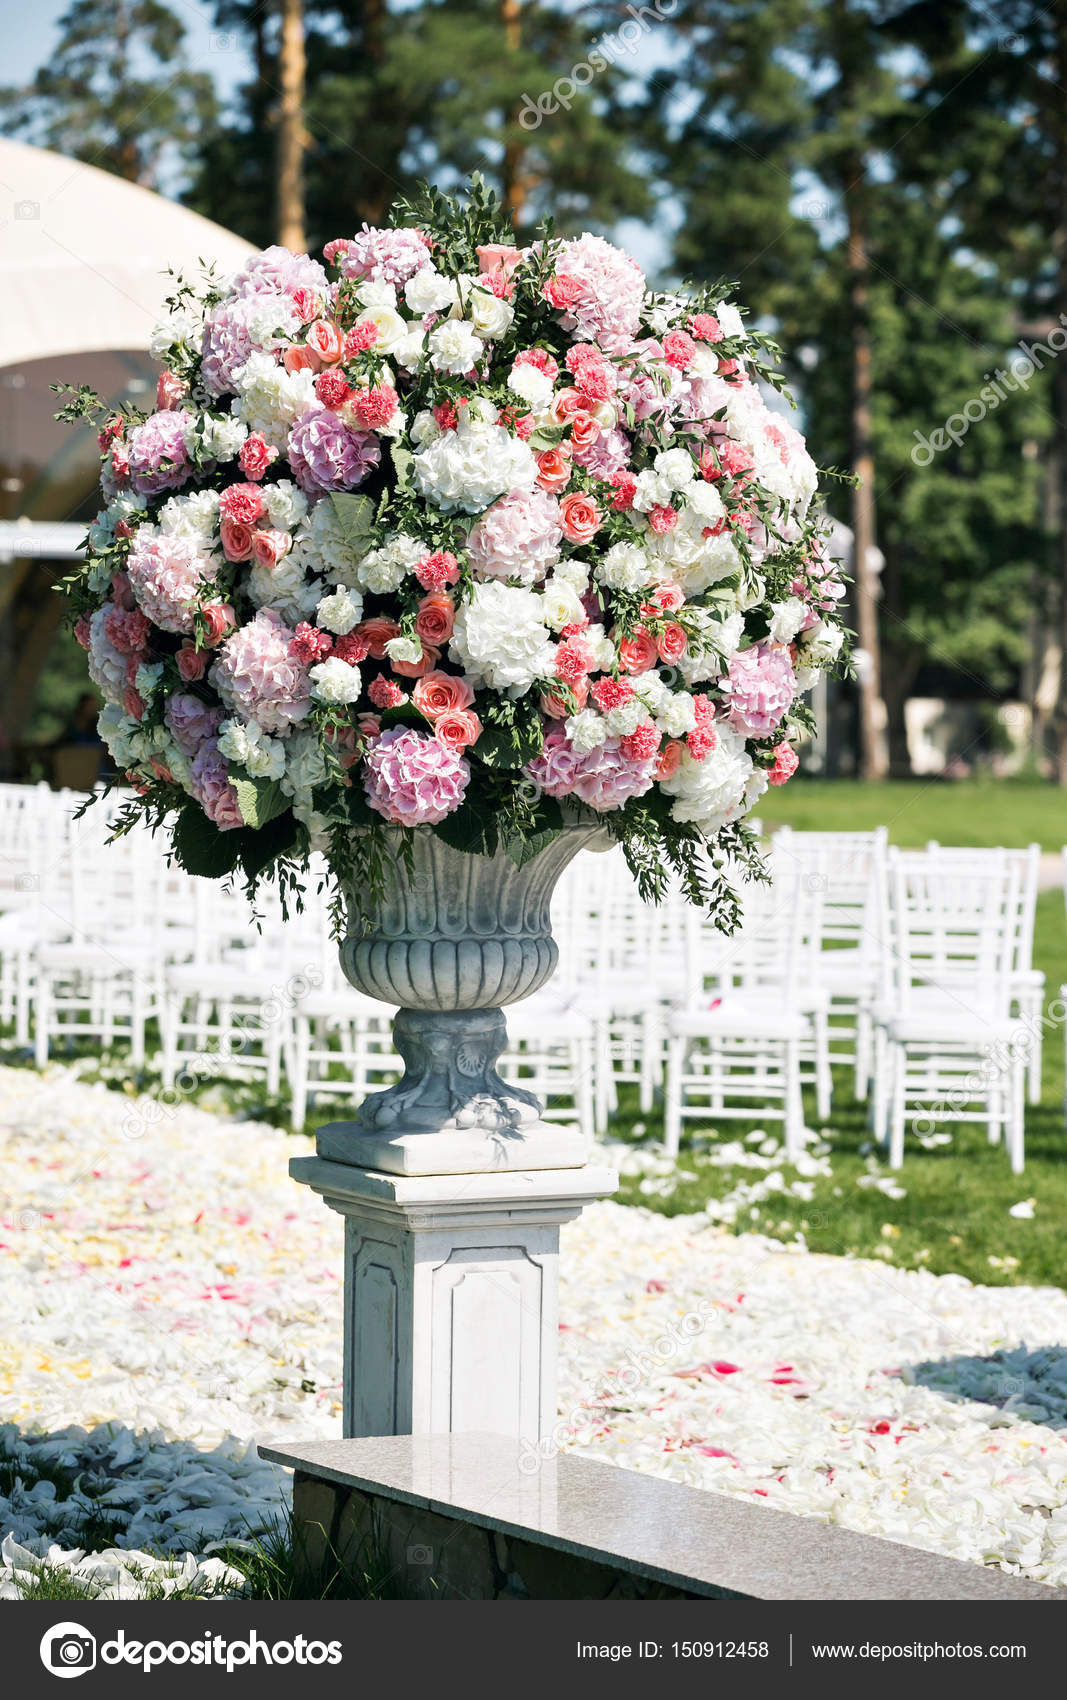 Beautiful wedding ceremony design decoration elements with fresh beautiful wedding ceremony design decoration elements with fresh flowers composition floral design petals roses and chairs photo by malkovkosta junglespirit Image collections